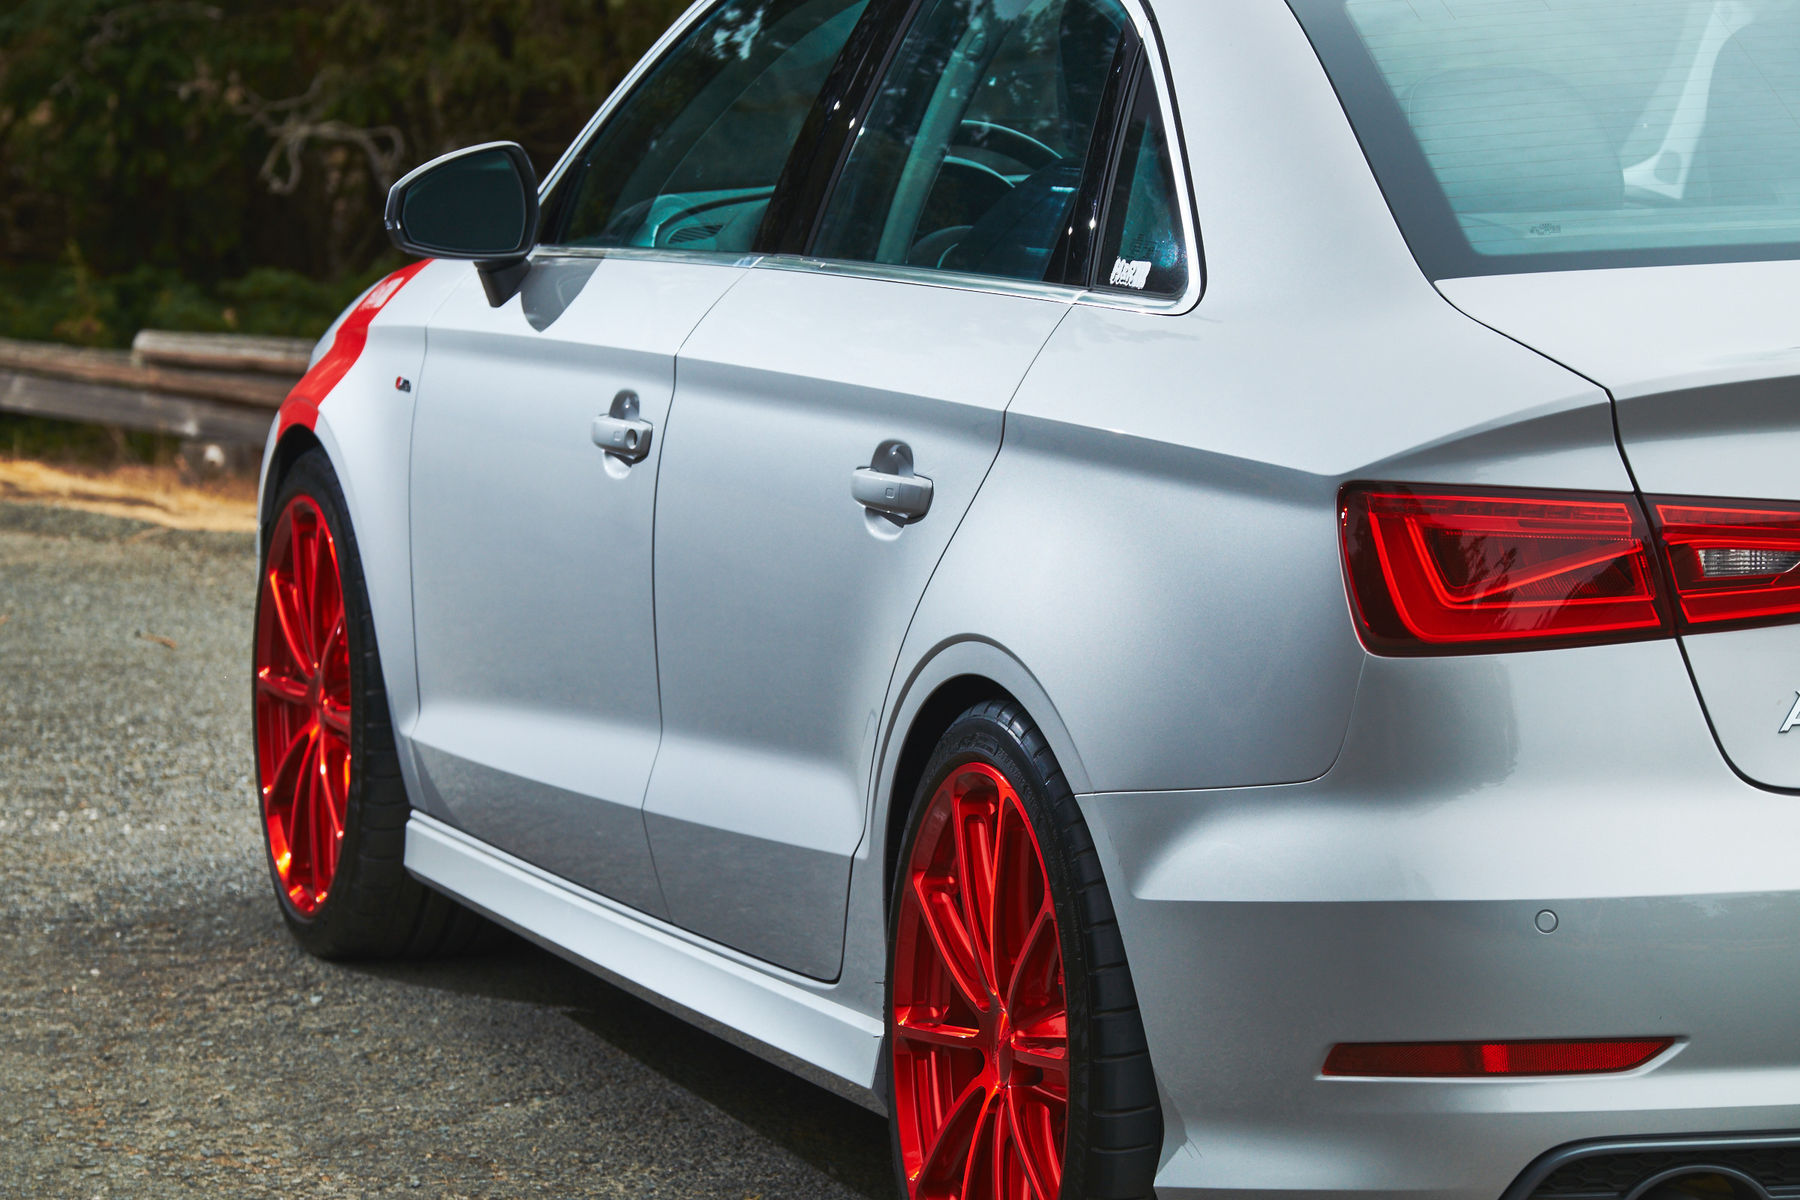 2015 Audi A3 | Audi A3 on Forgeline GT1 5-Lug Wheels